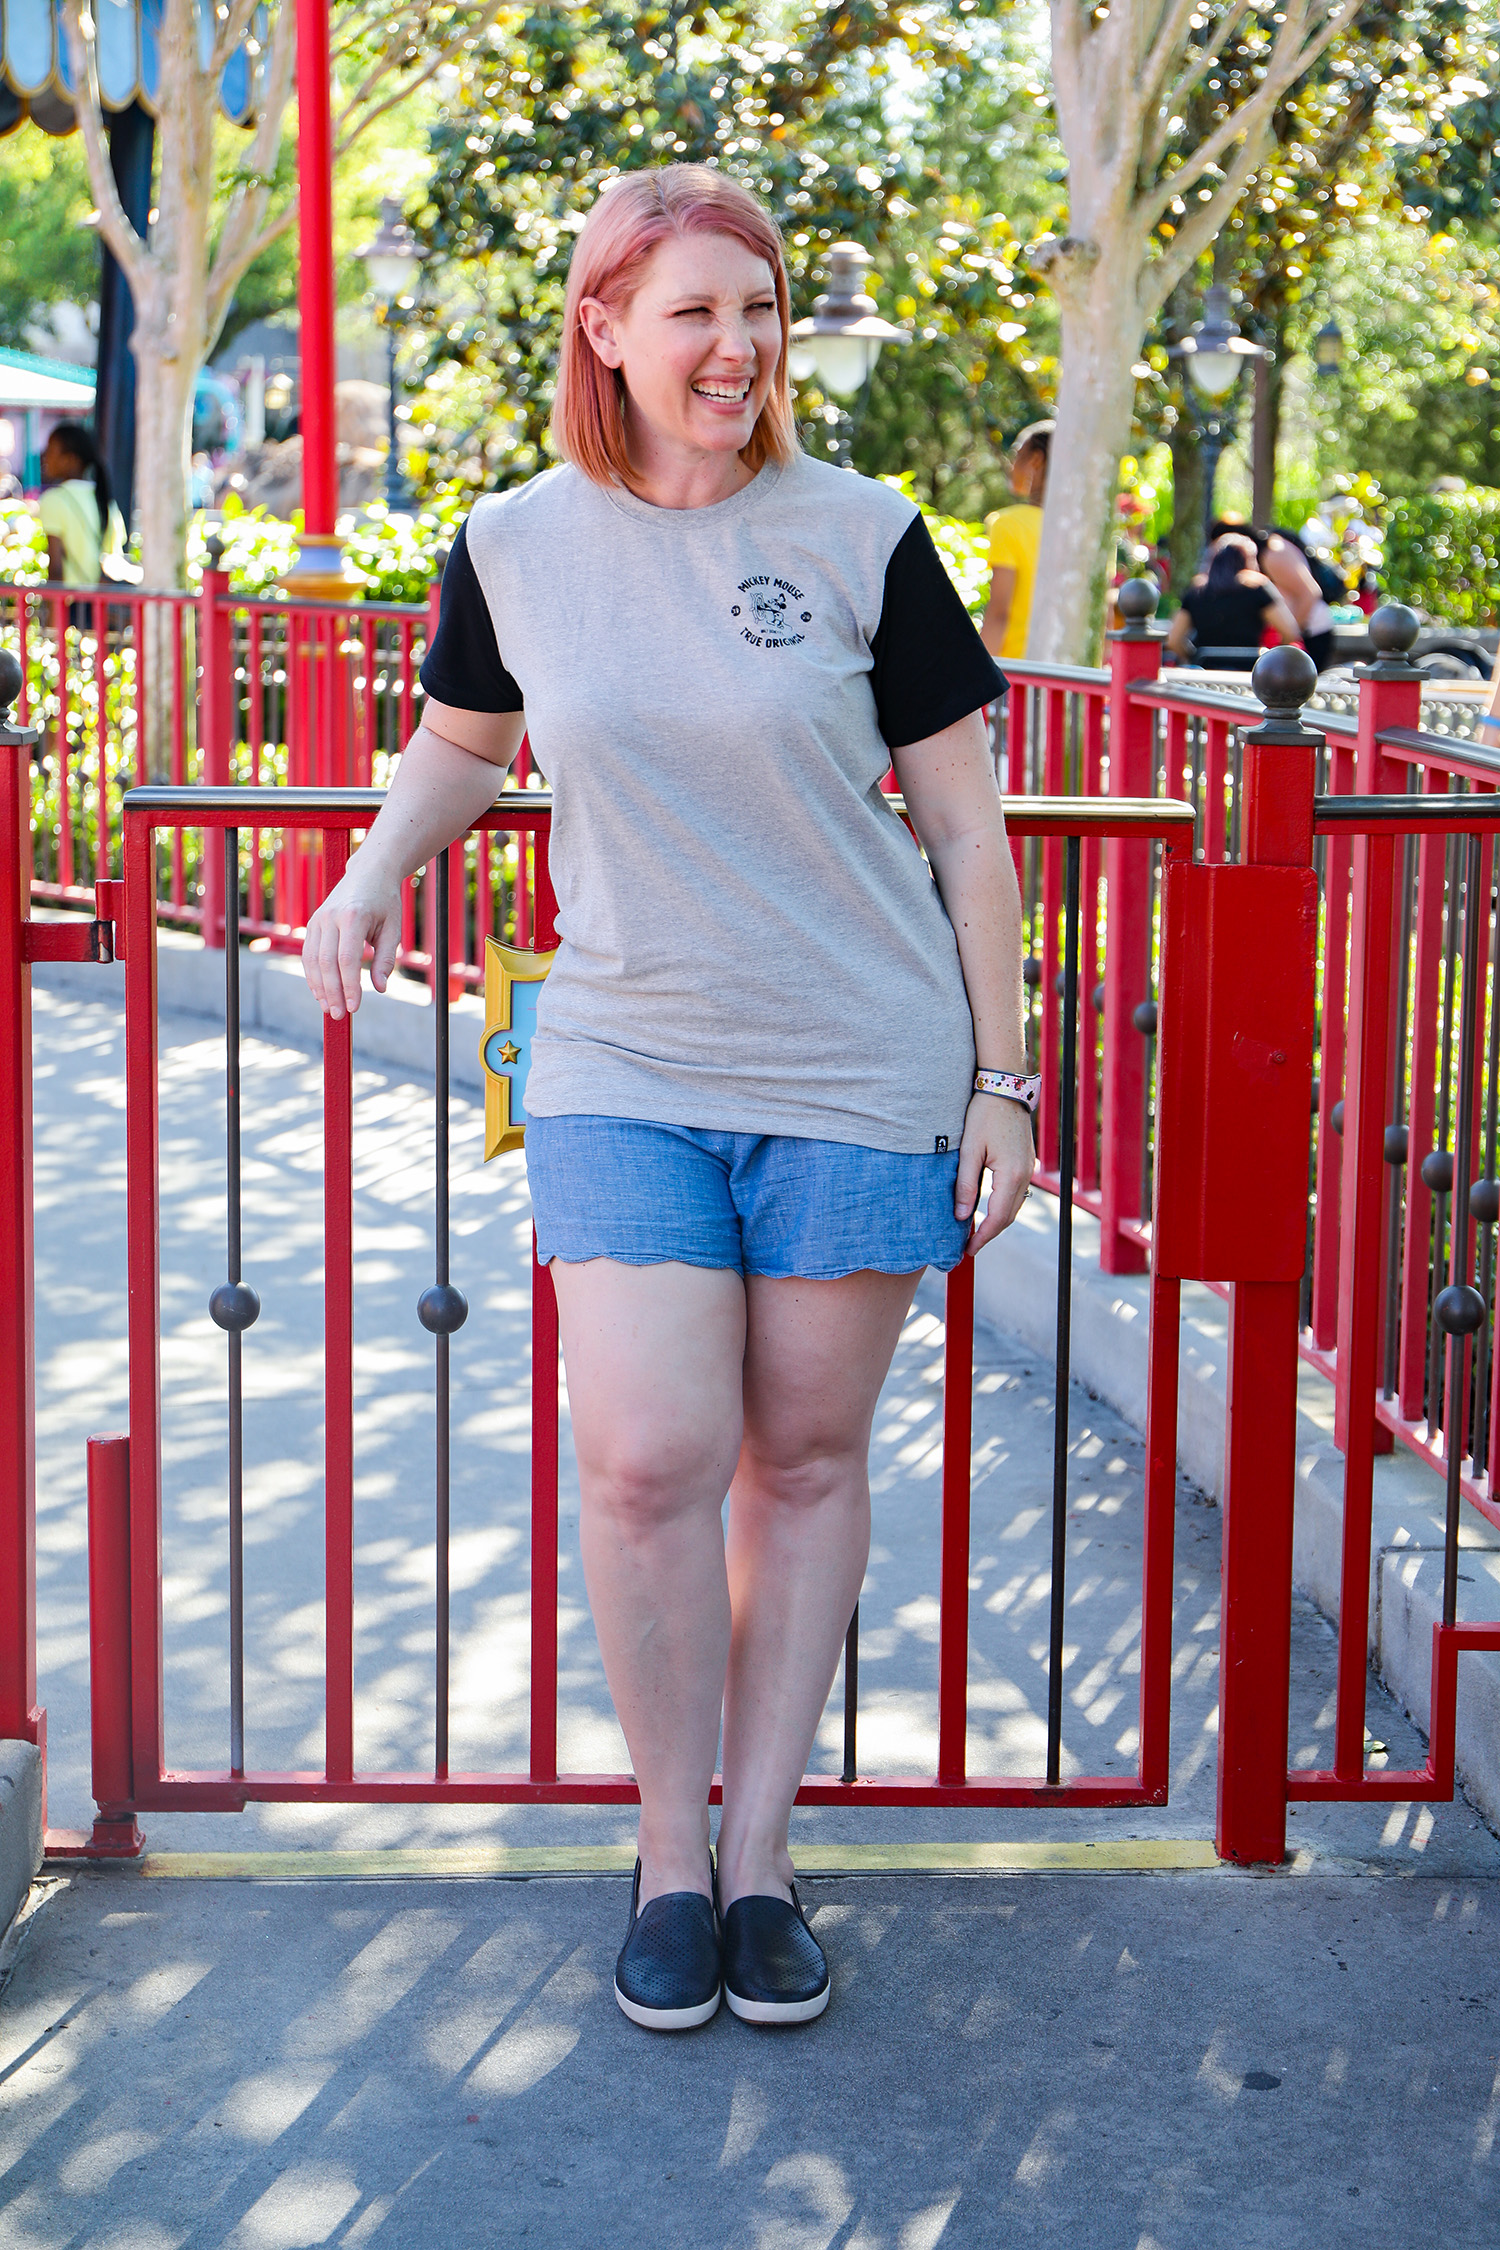 Disney World Outfits: This casual outfit is perfect for the Magic Kingdom!